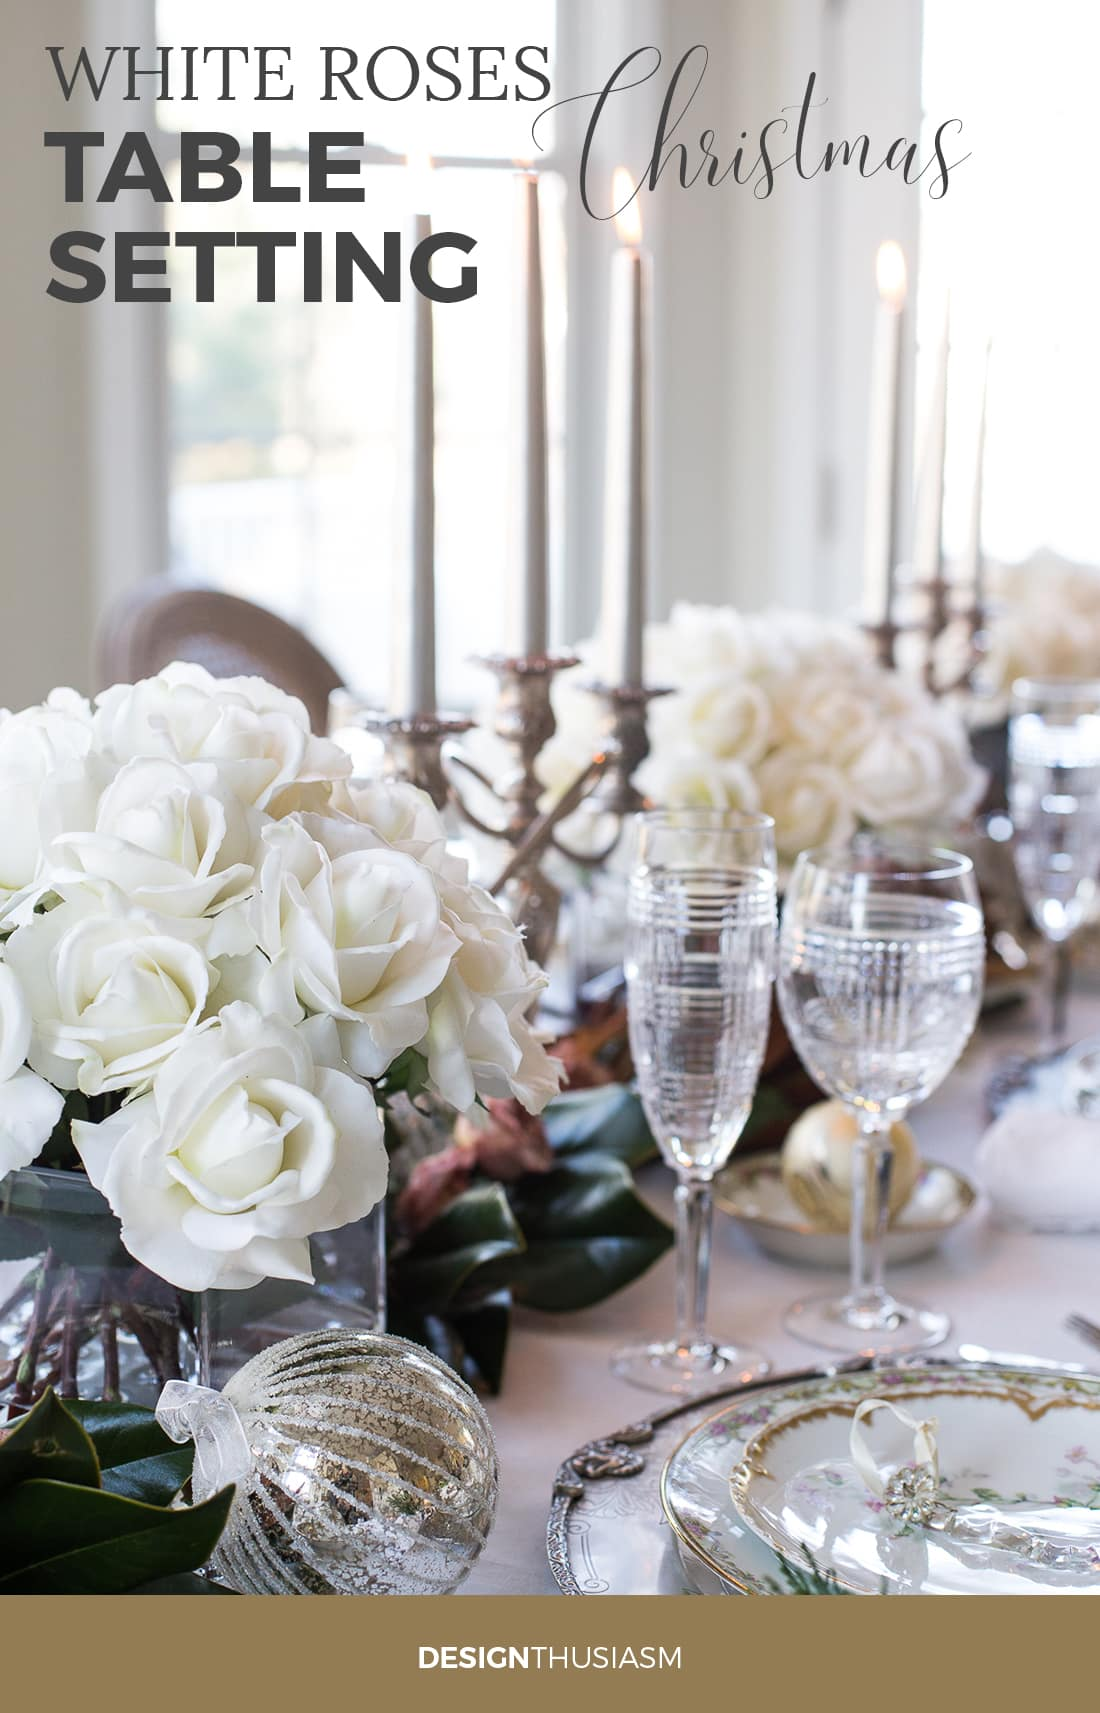 White Roses Christmas Table Setting